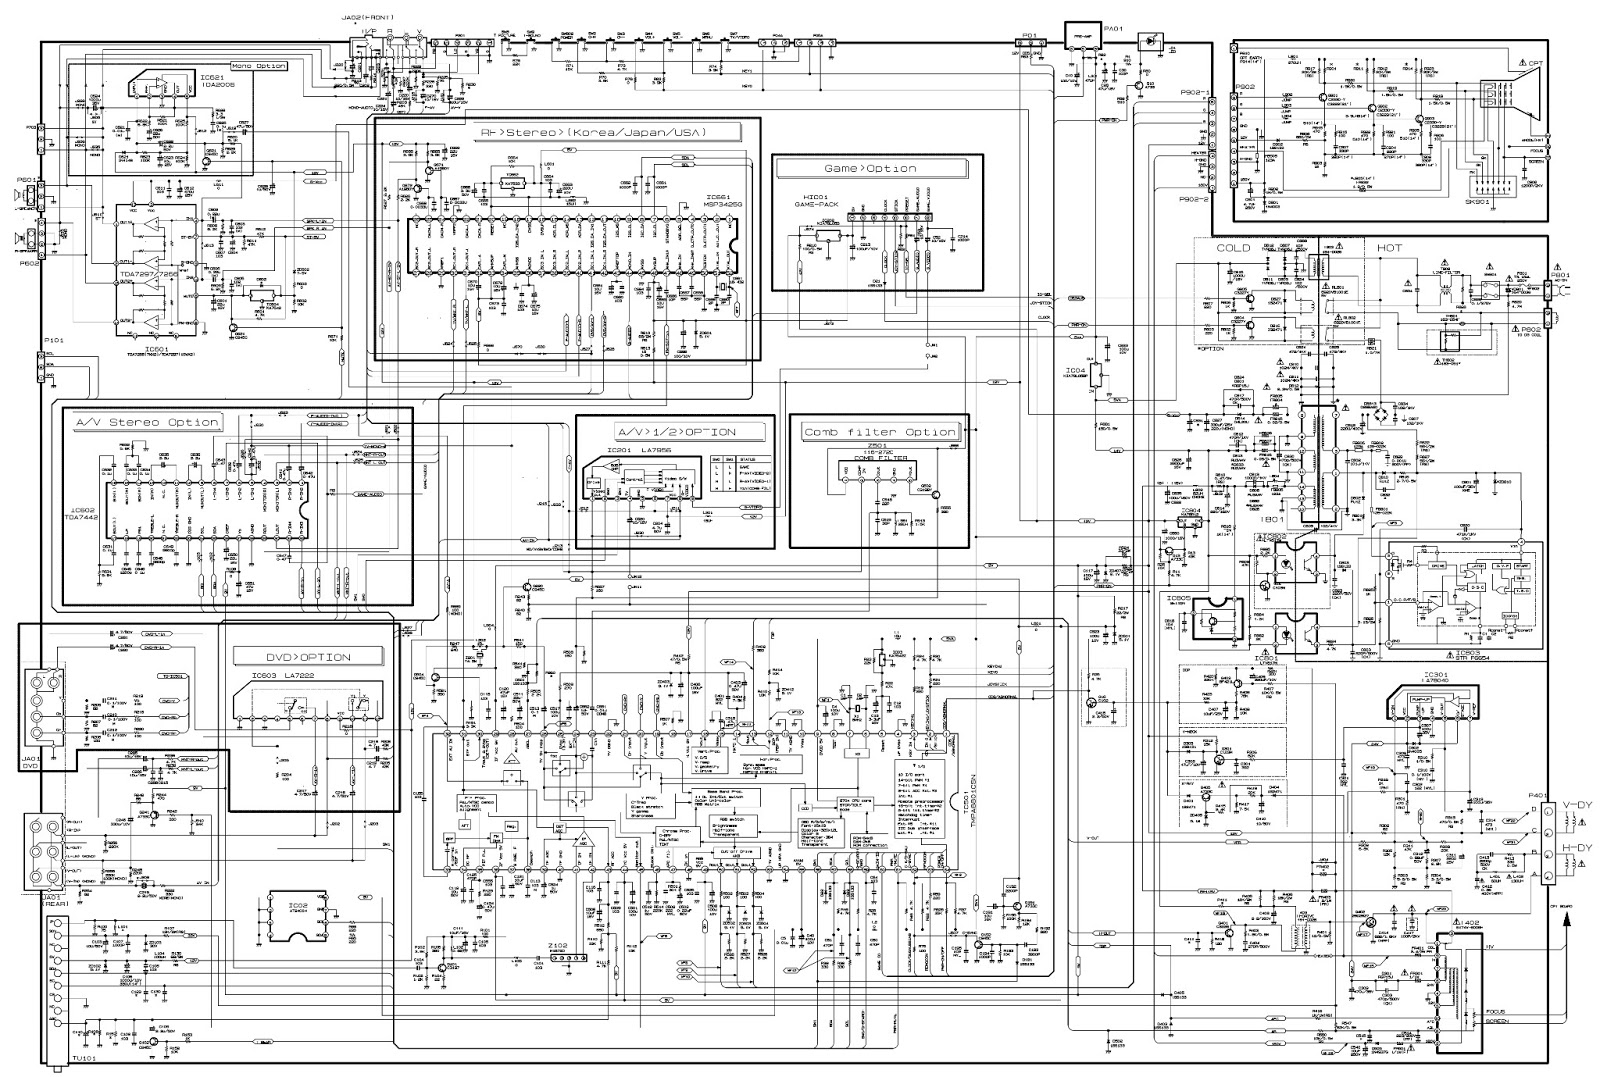 hight resolution of lg rp21fd10 schematic diagram used ics tda2006 tda7297 7296 rh electronicshelponline blogspot com lg tv diagram